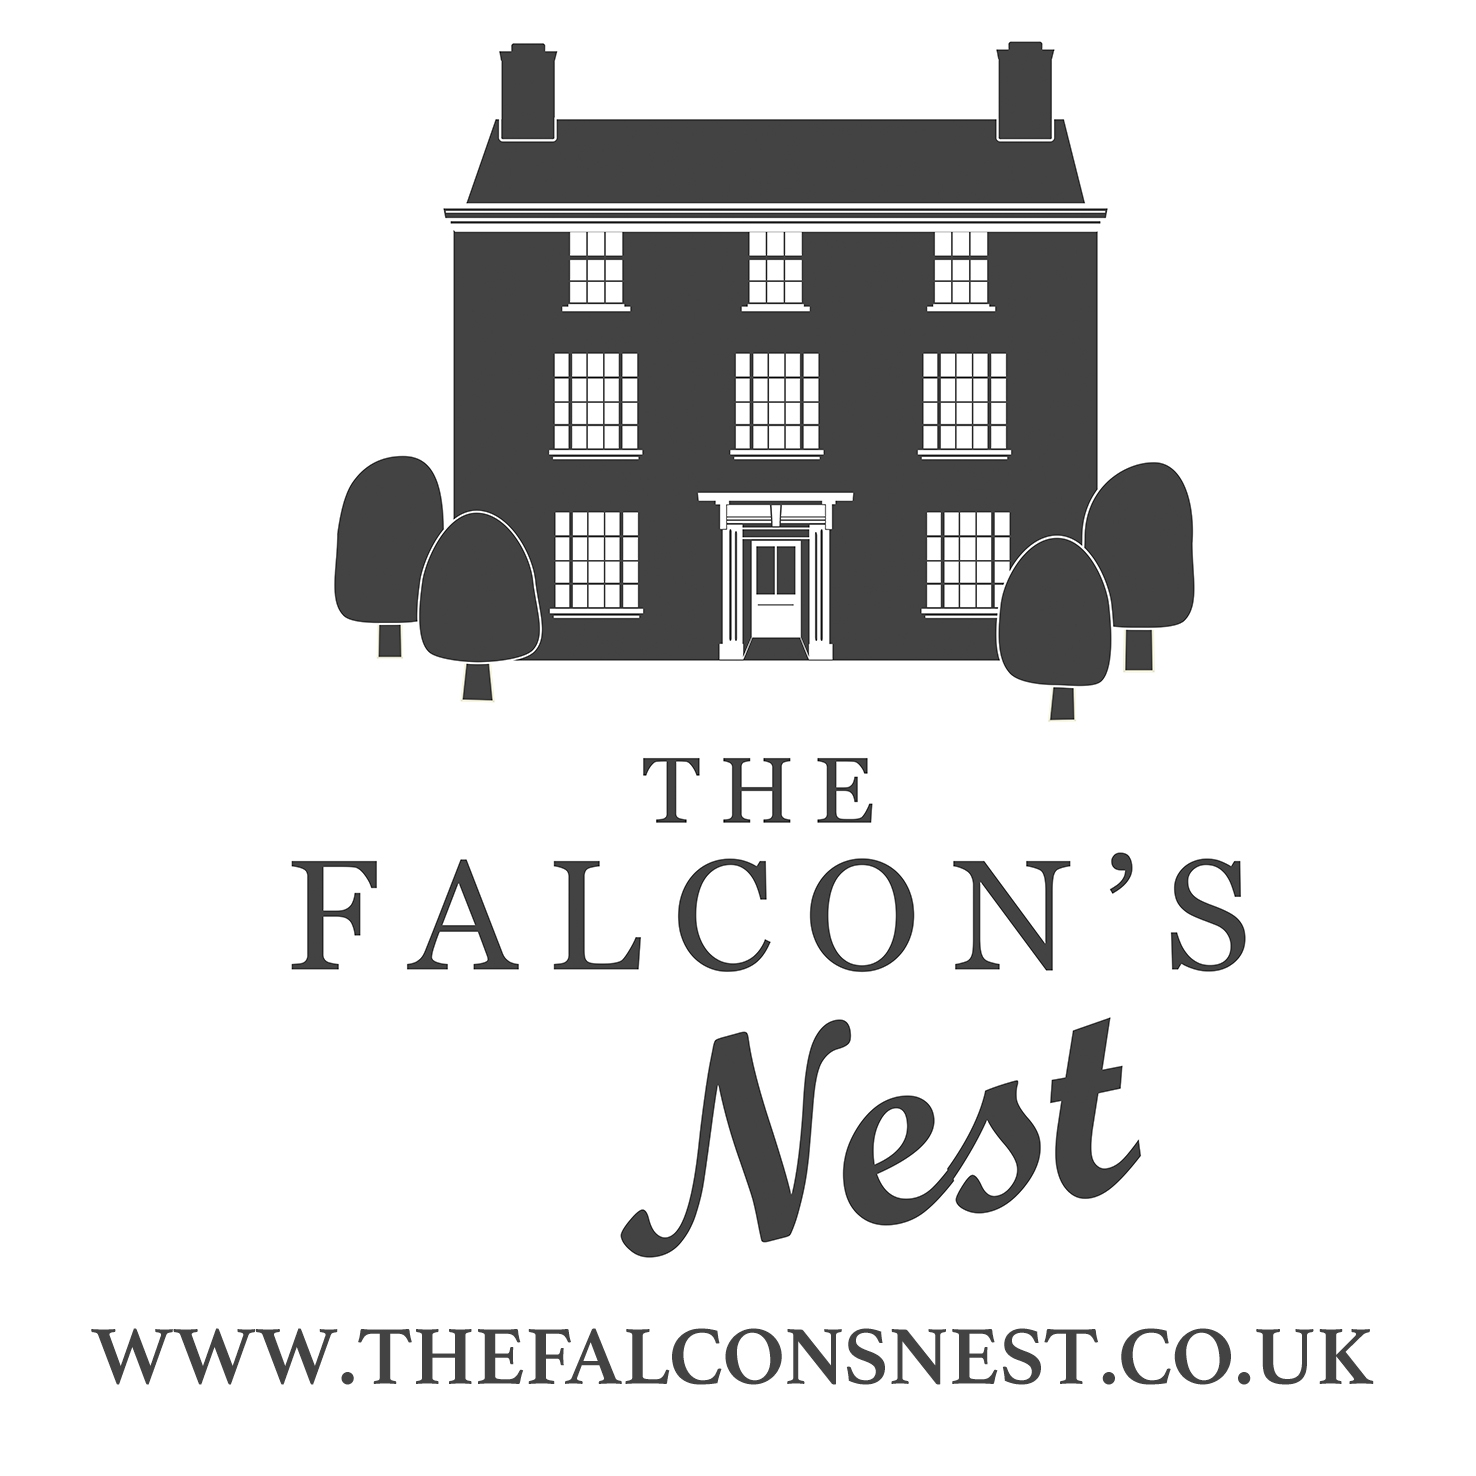 The Falcon's Nest